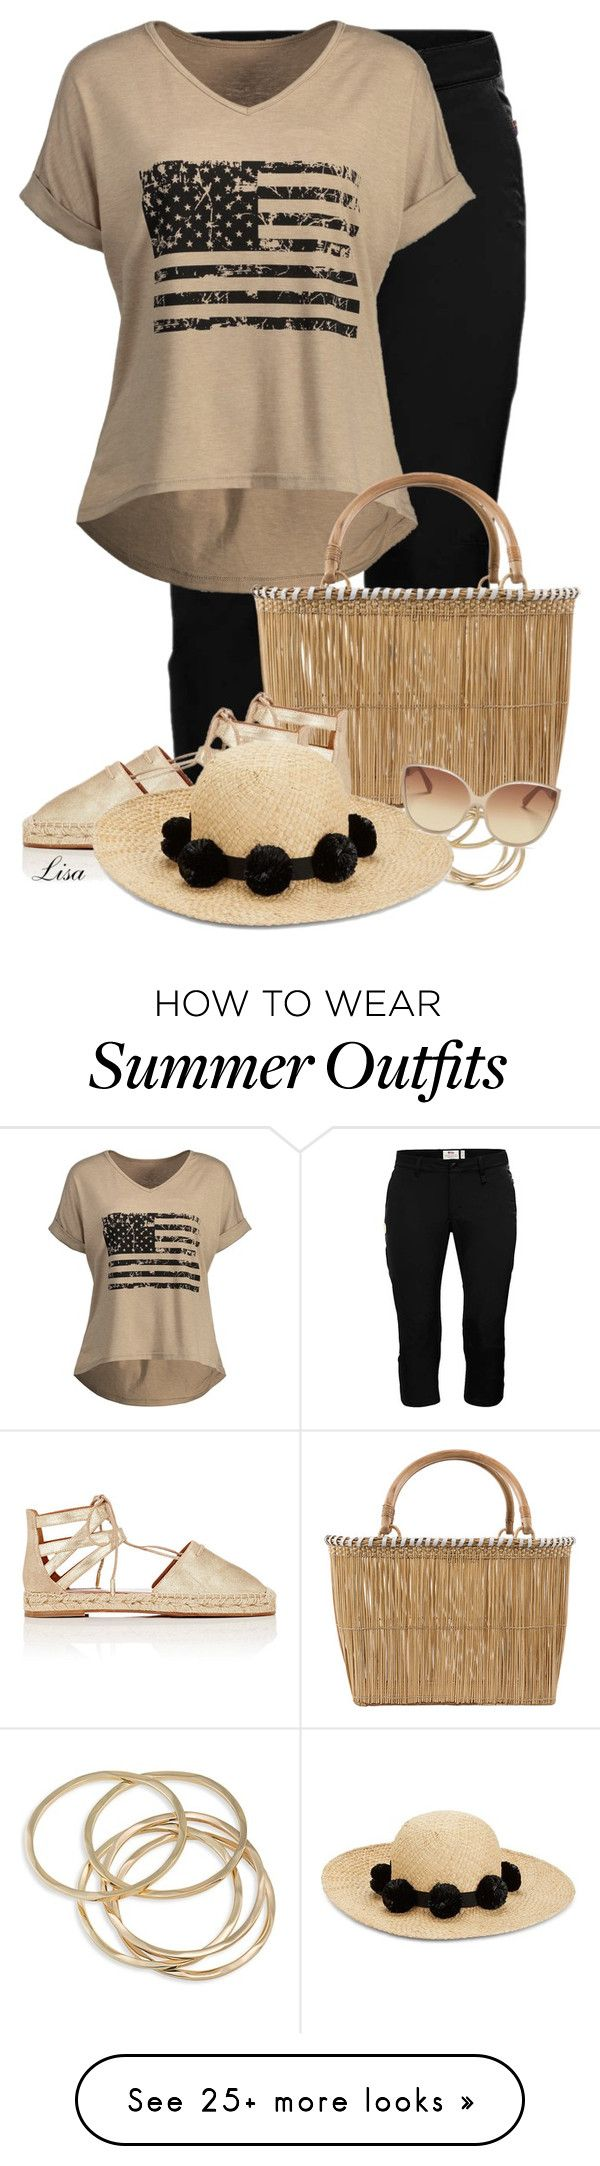 summer outfits flag graphic tee by lmm2nd on polyvore featuring fj llr ven a fashion. Black Bedroom Furniture Sets. Home Design Ideas